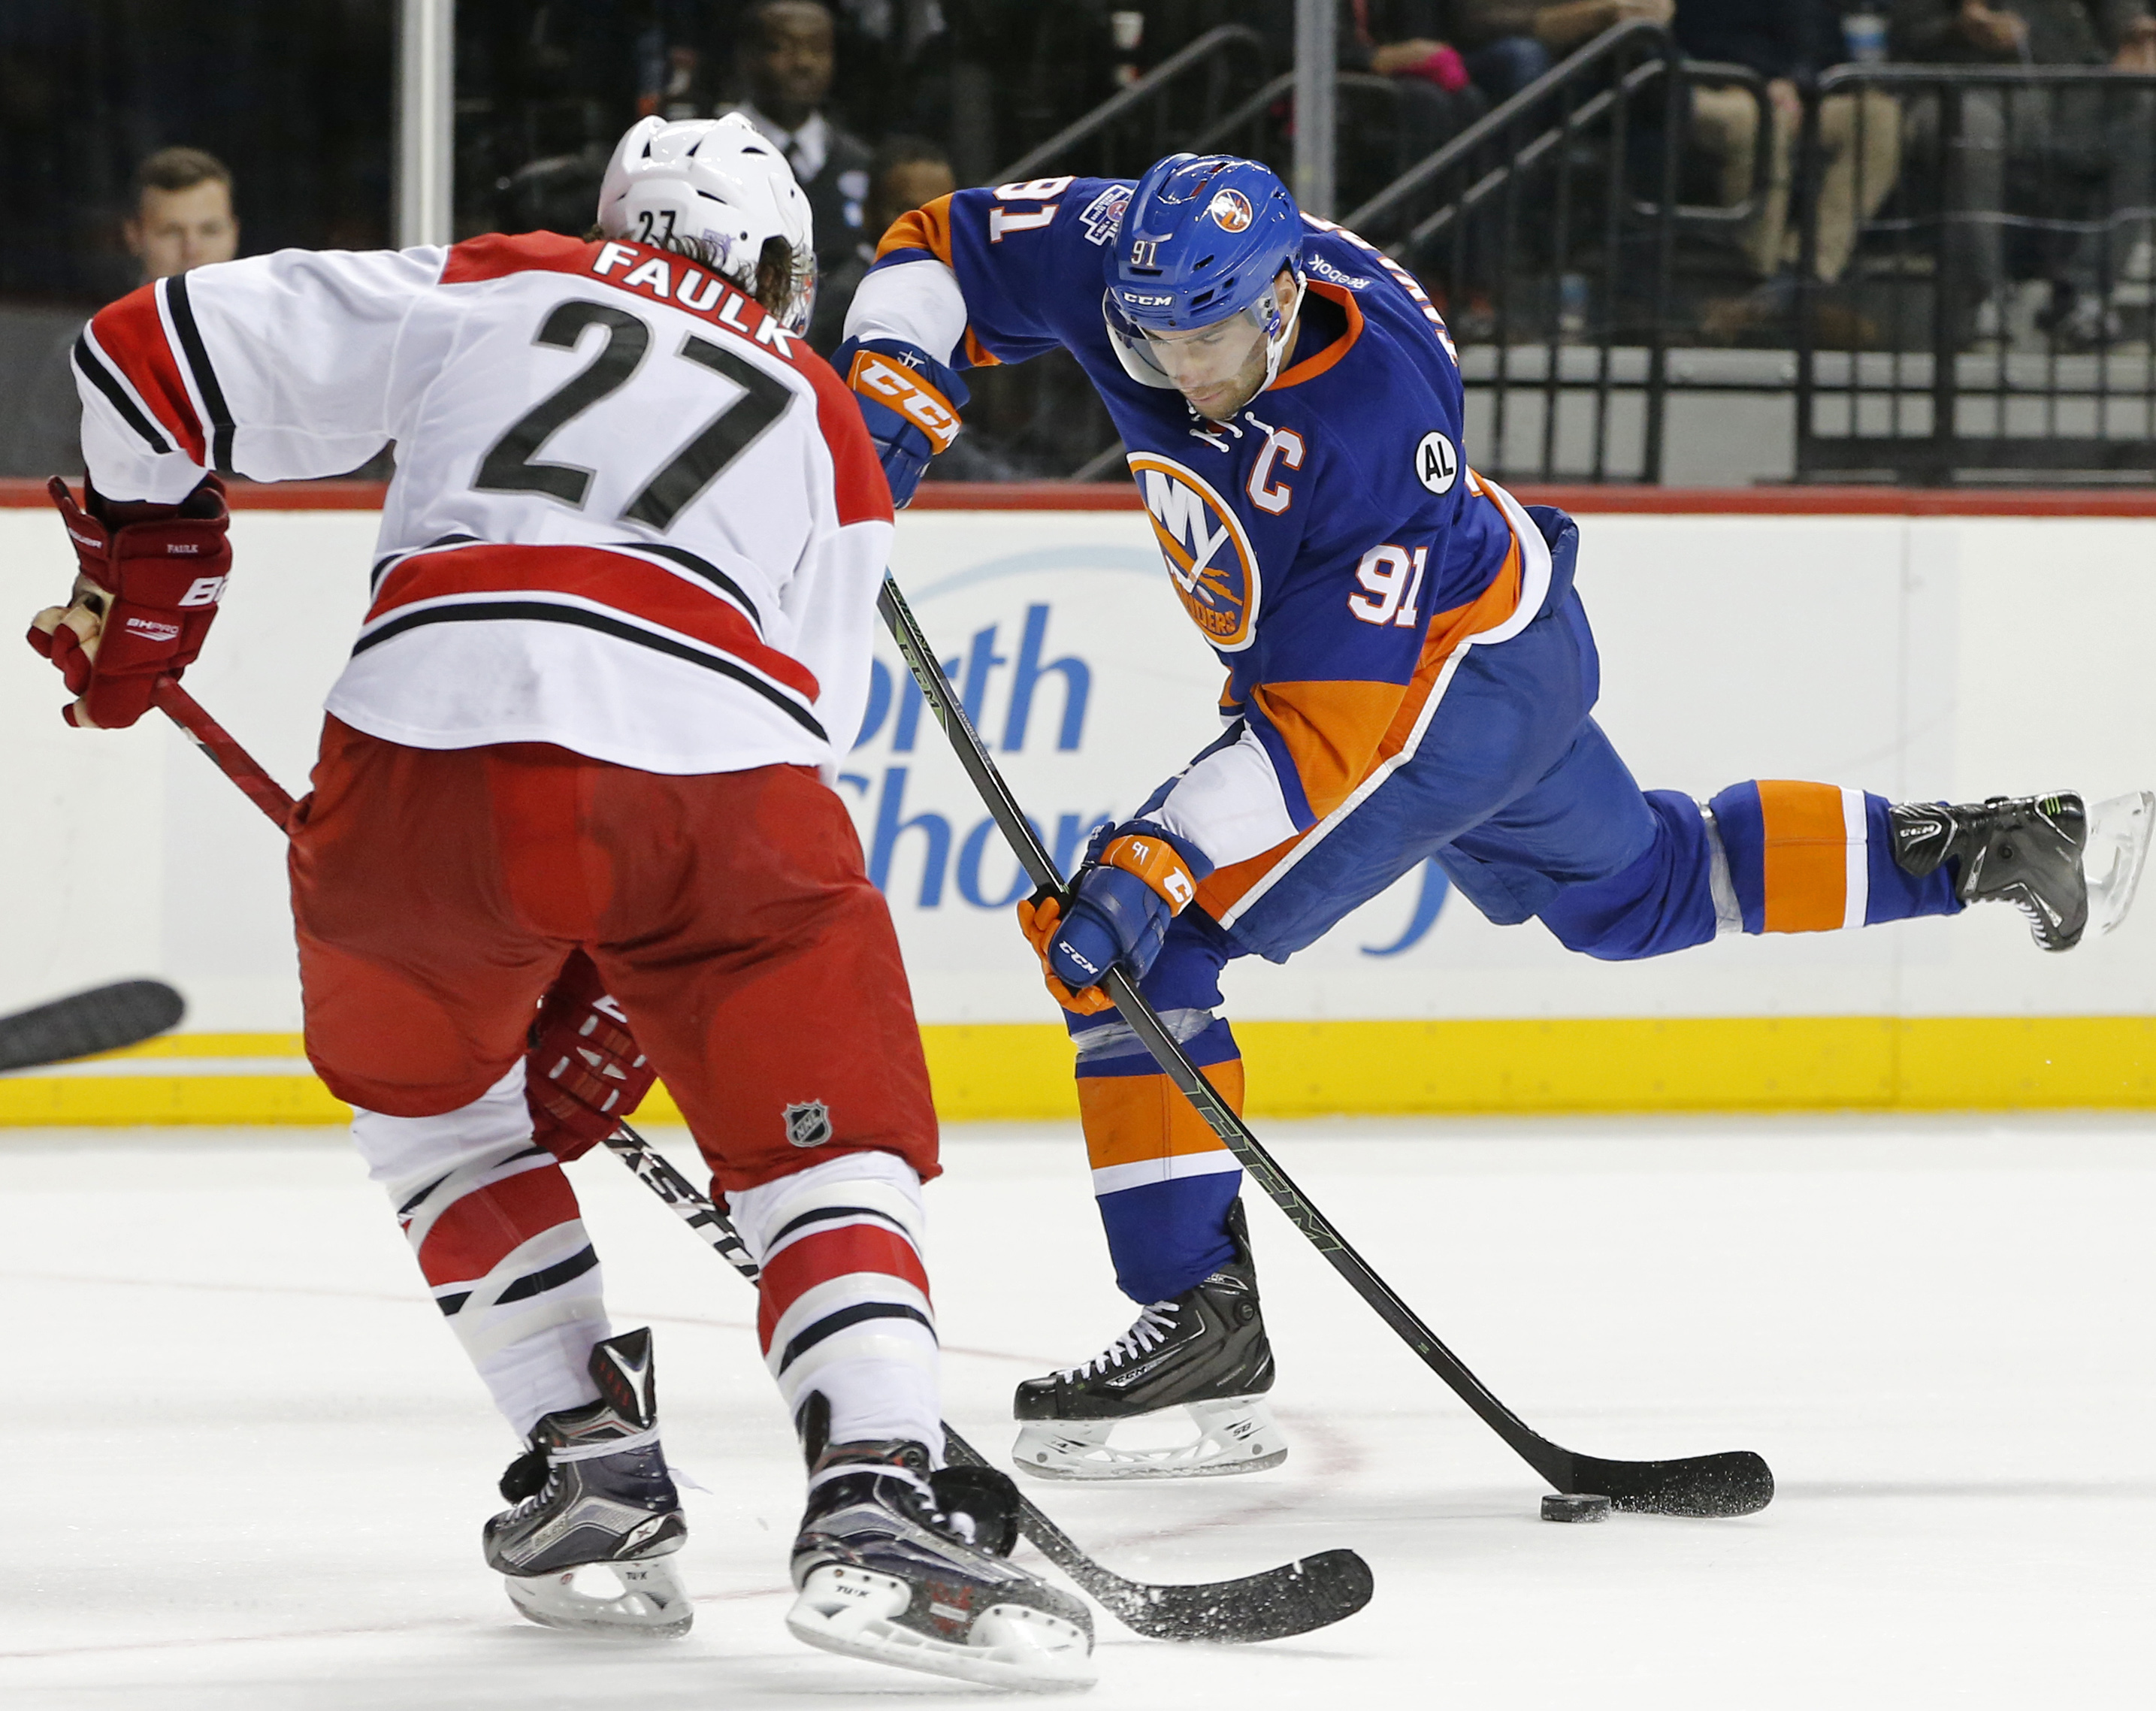 New York Islanders center John Tavares (91) shoots on goal with Carolina Hurricanes defenseman Justin Faulk (27) defending in overtime of an NHL hockey game in New York, Thursday, Oct. 29, 2015. The Hurricanes defeated the Islanders 3-2. (AP Photo/Kathy W